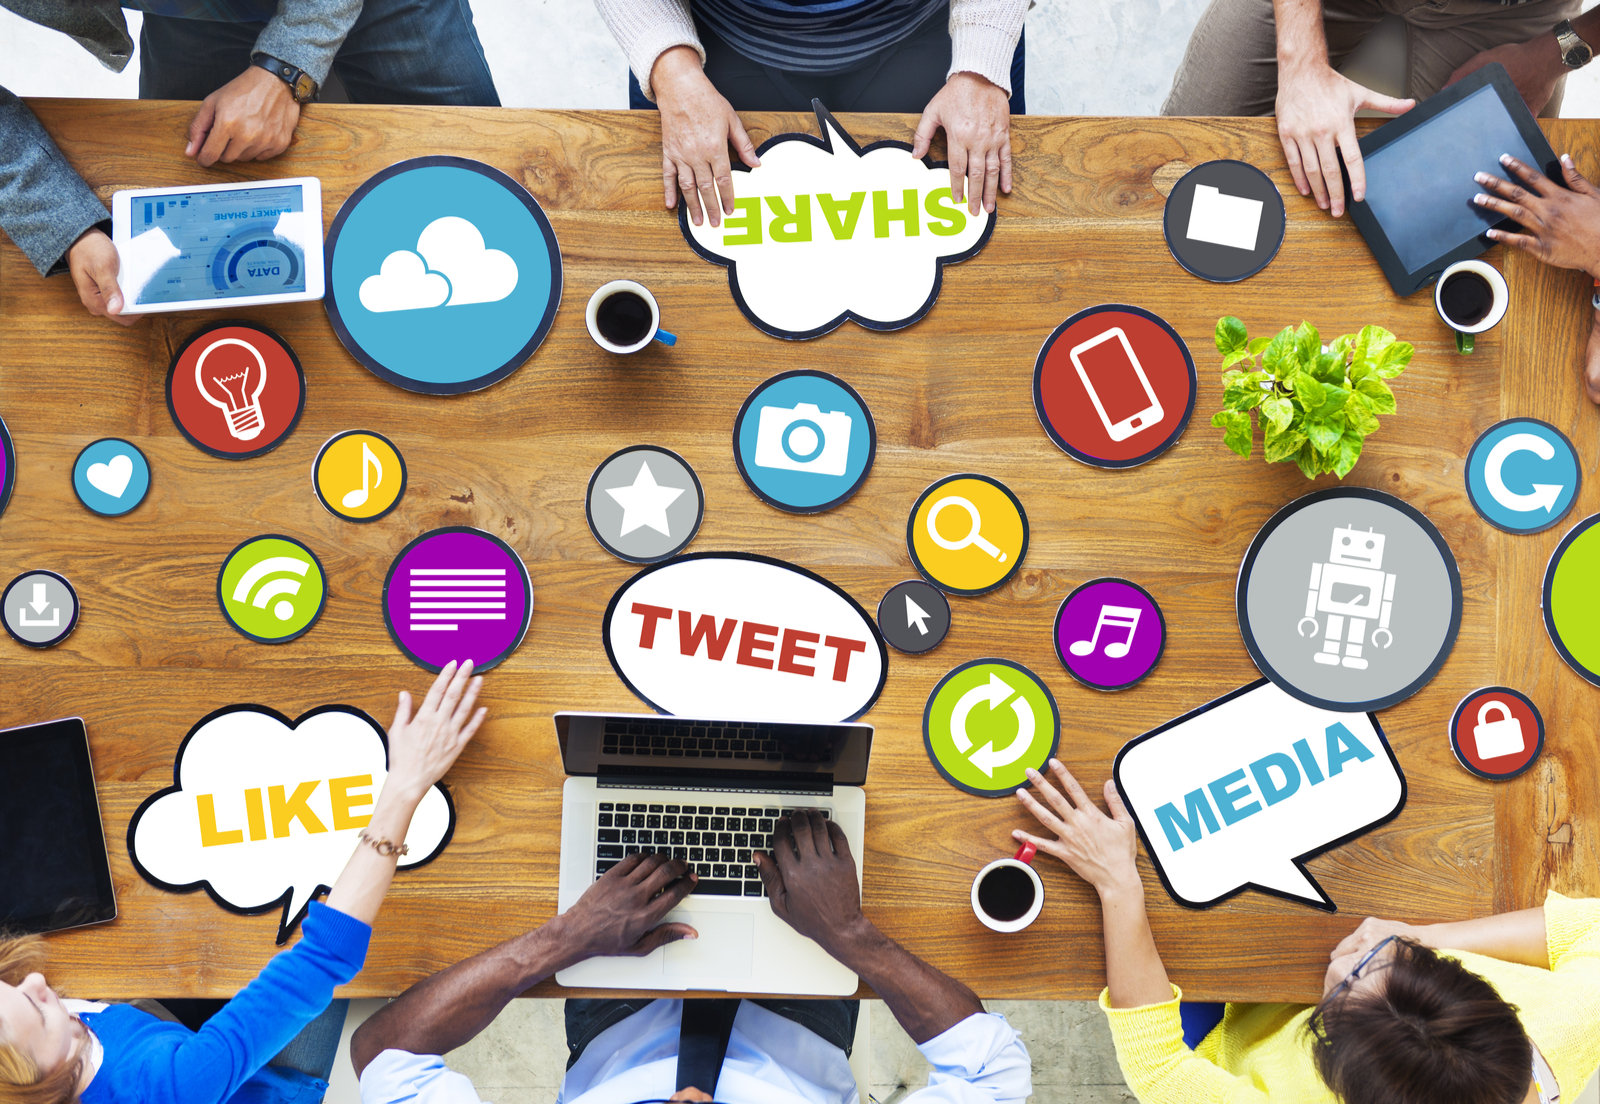 Icons | Building A Social Media Marketing Plan That Works